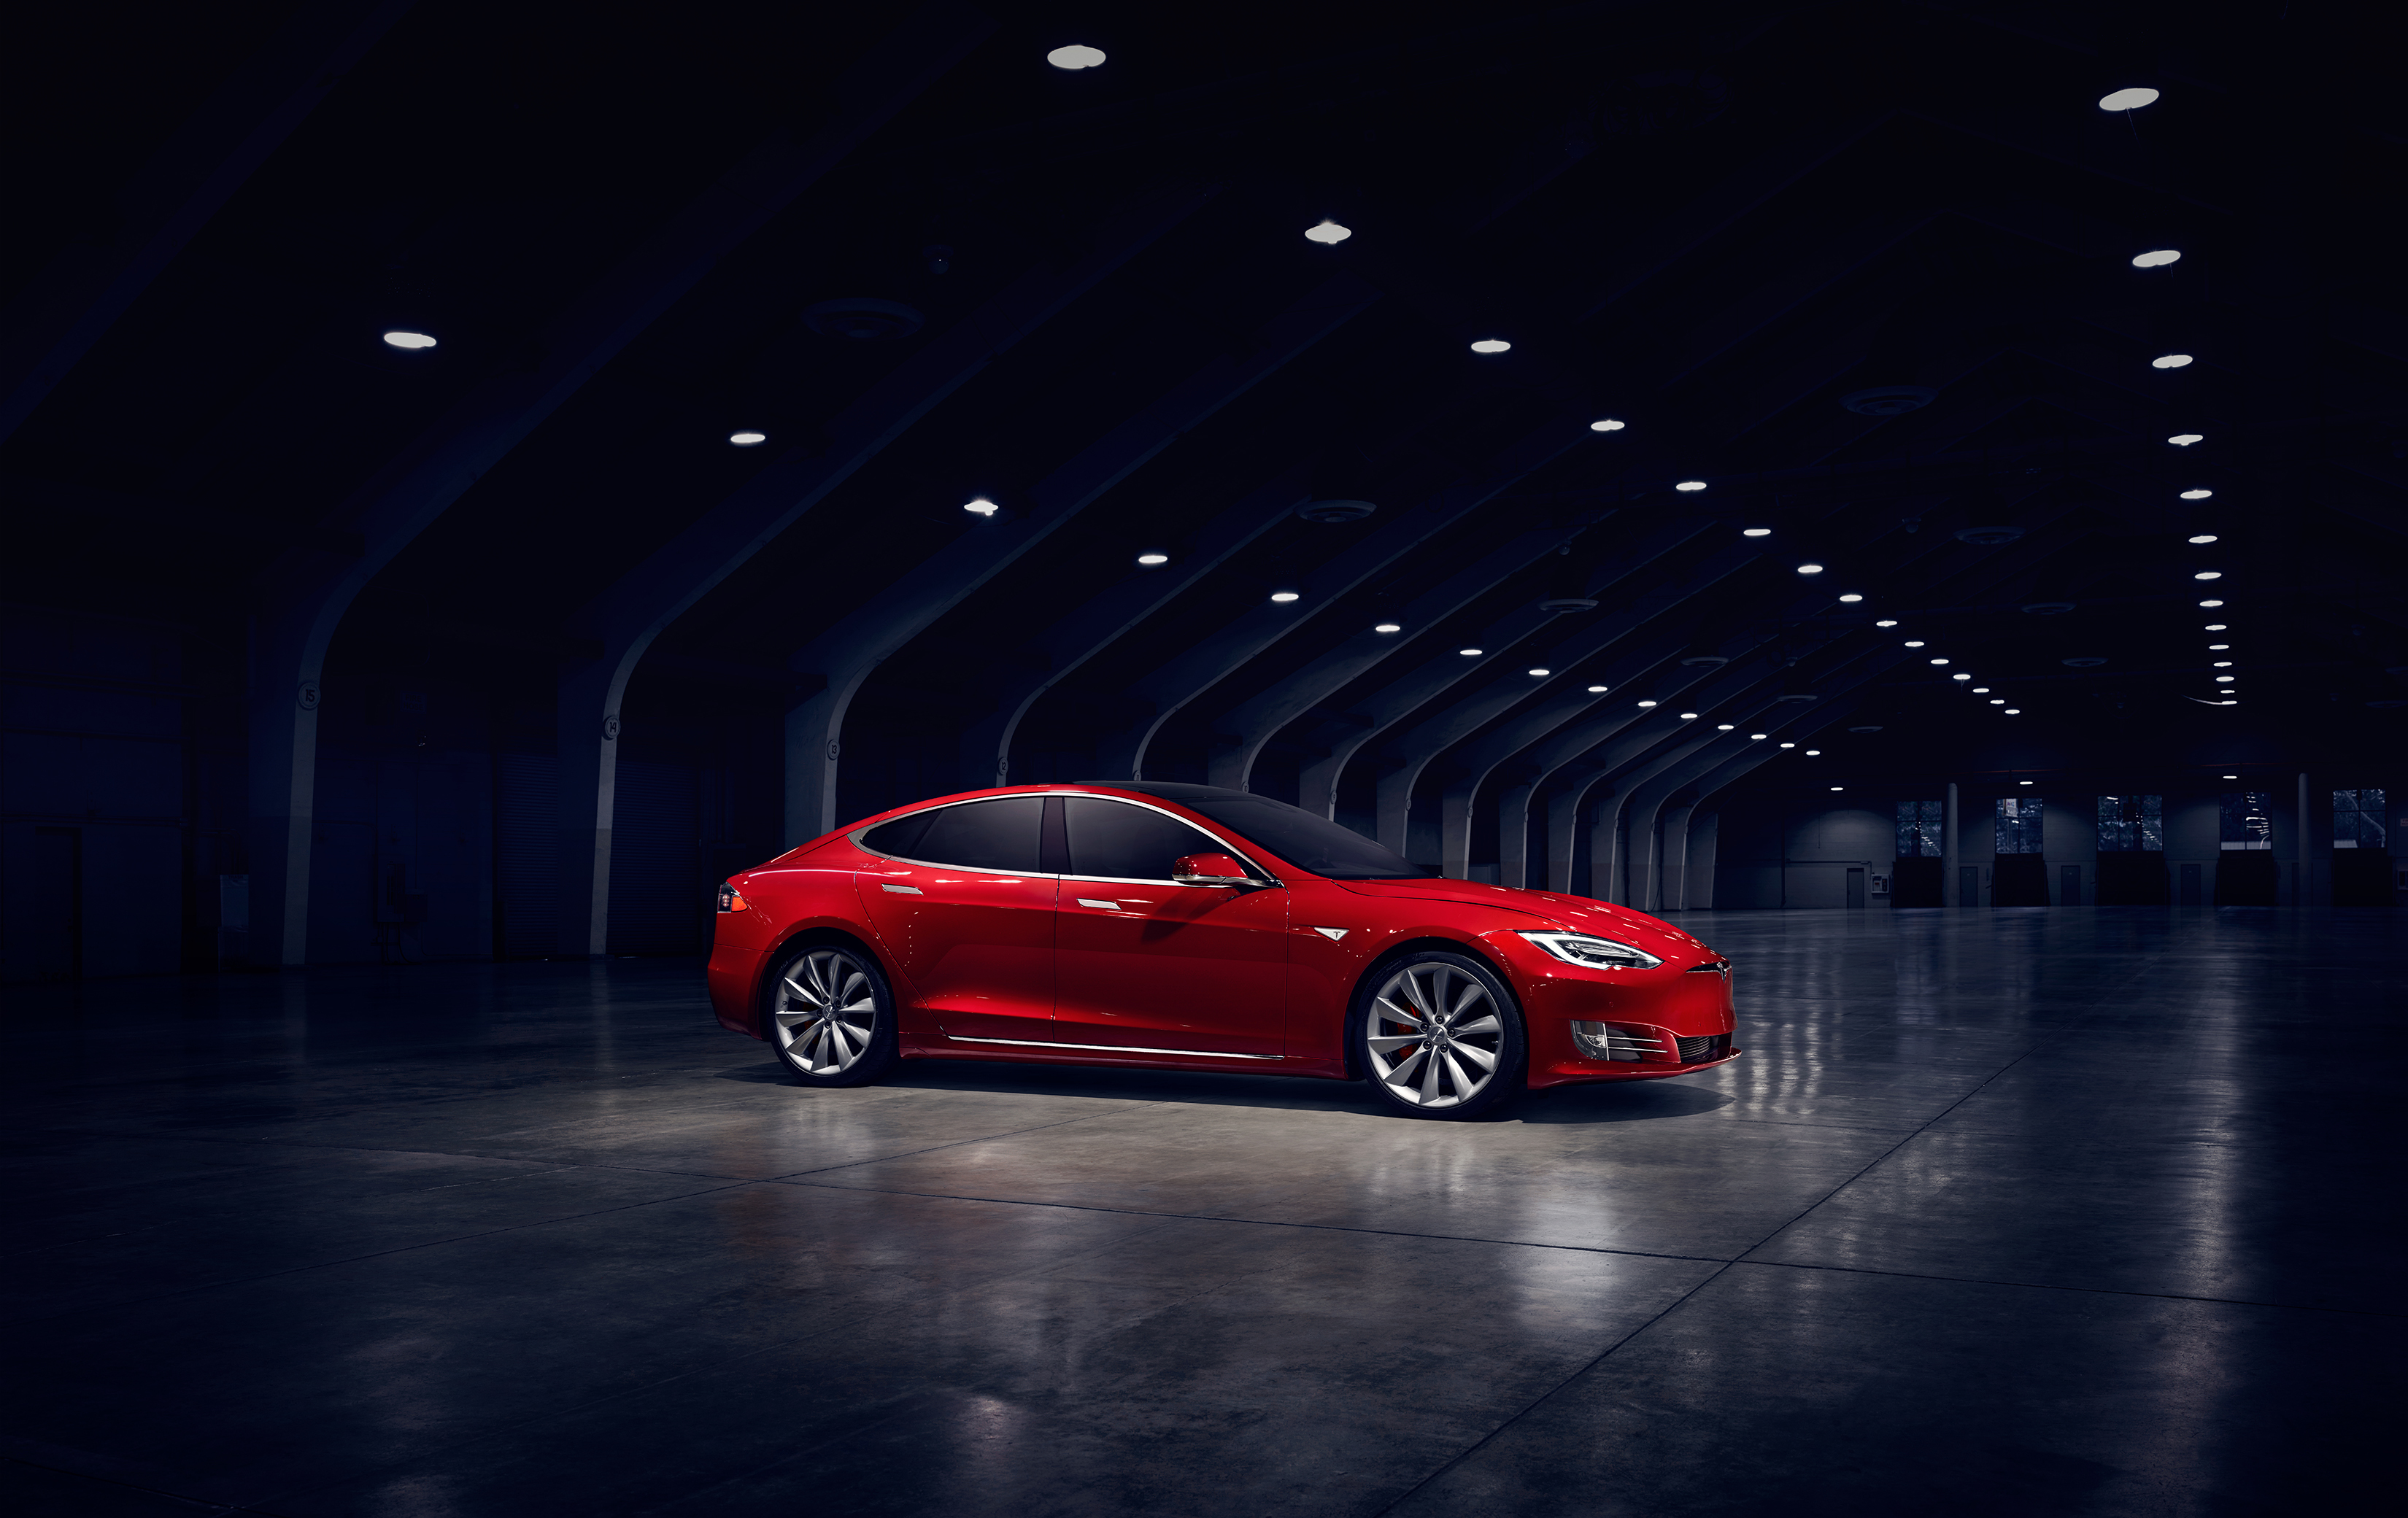 Tesla Model S Full Hd Wallpaper And Background Image